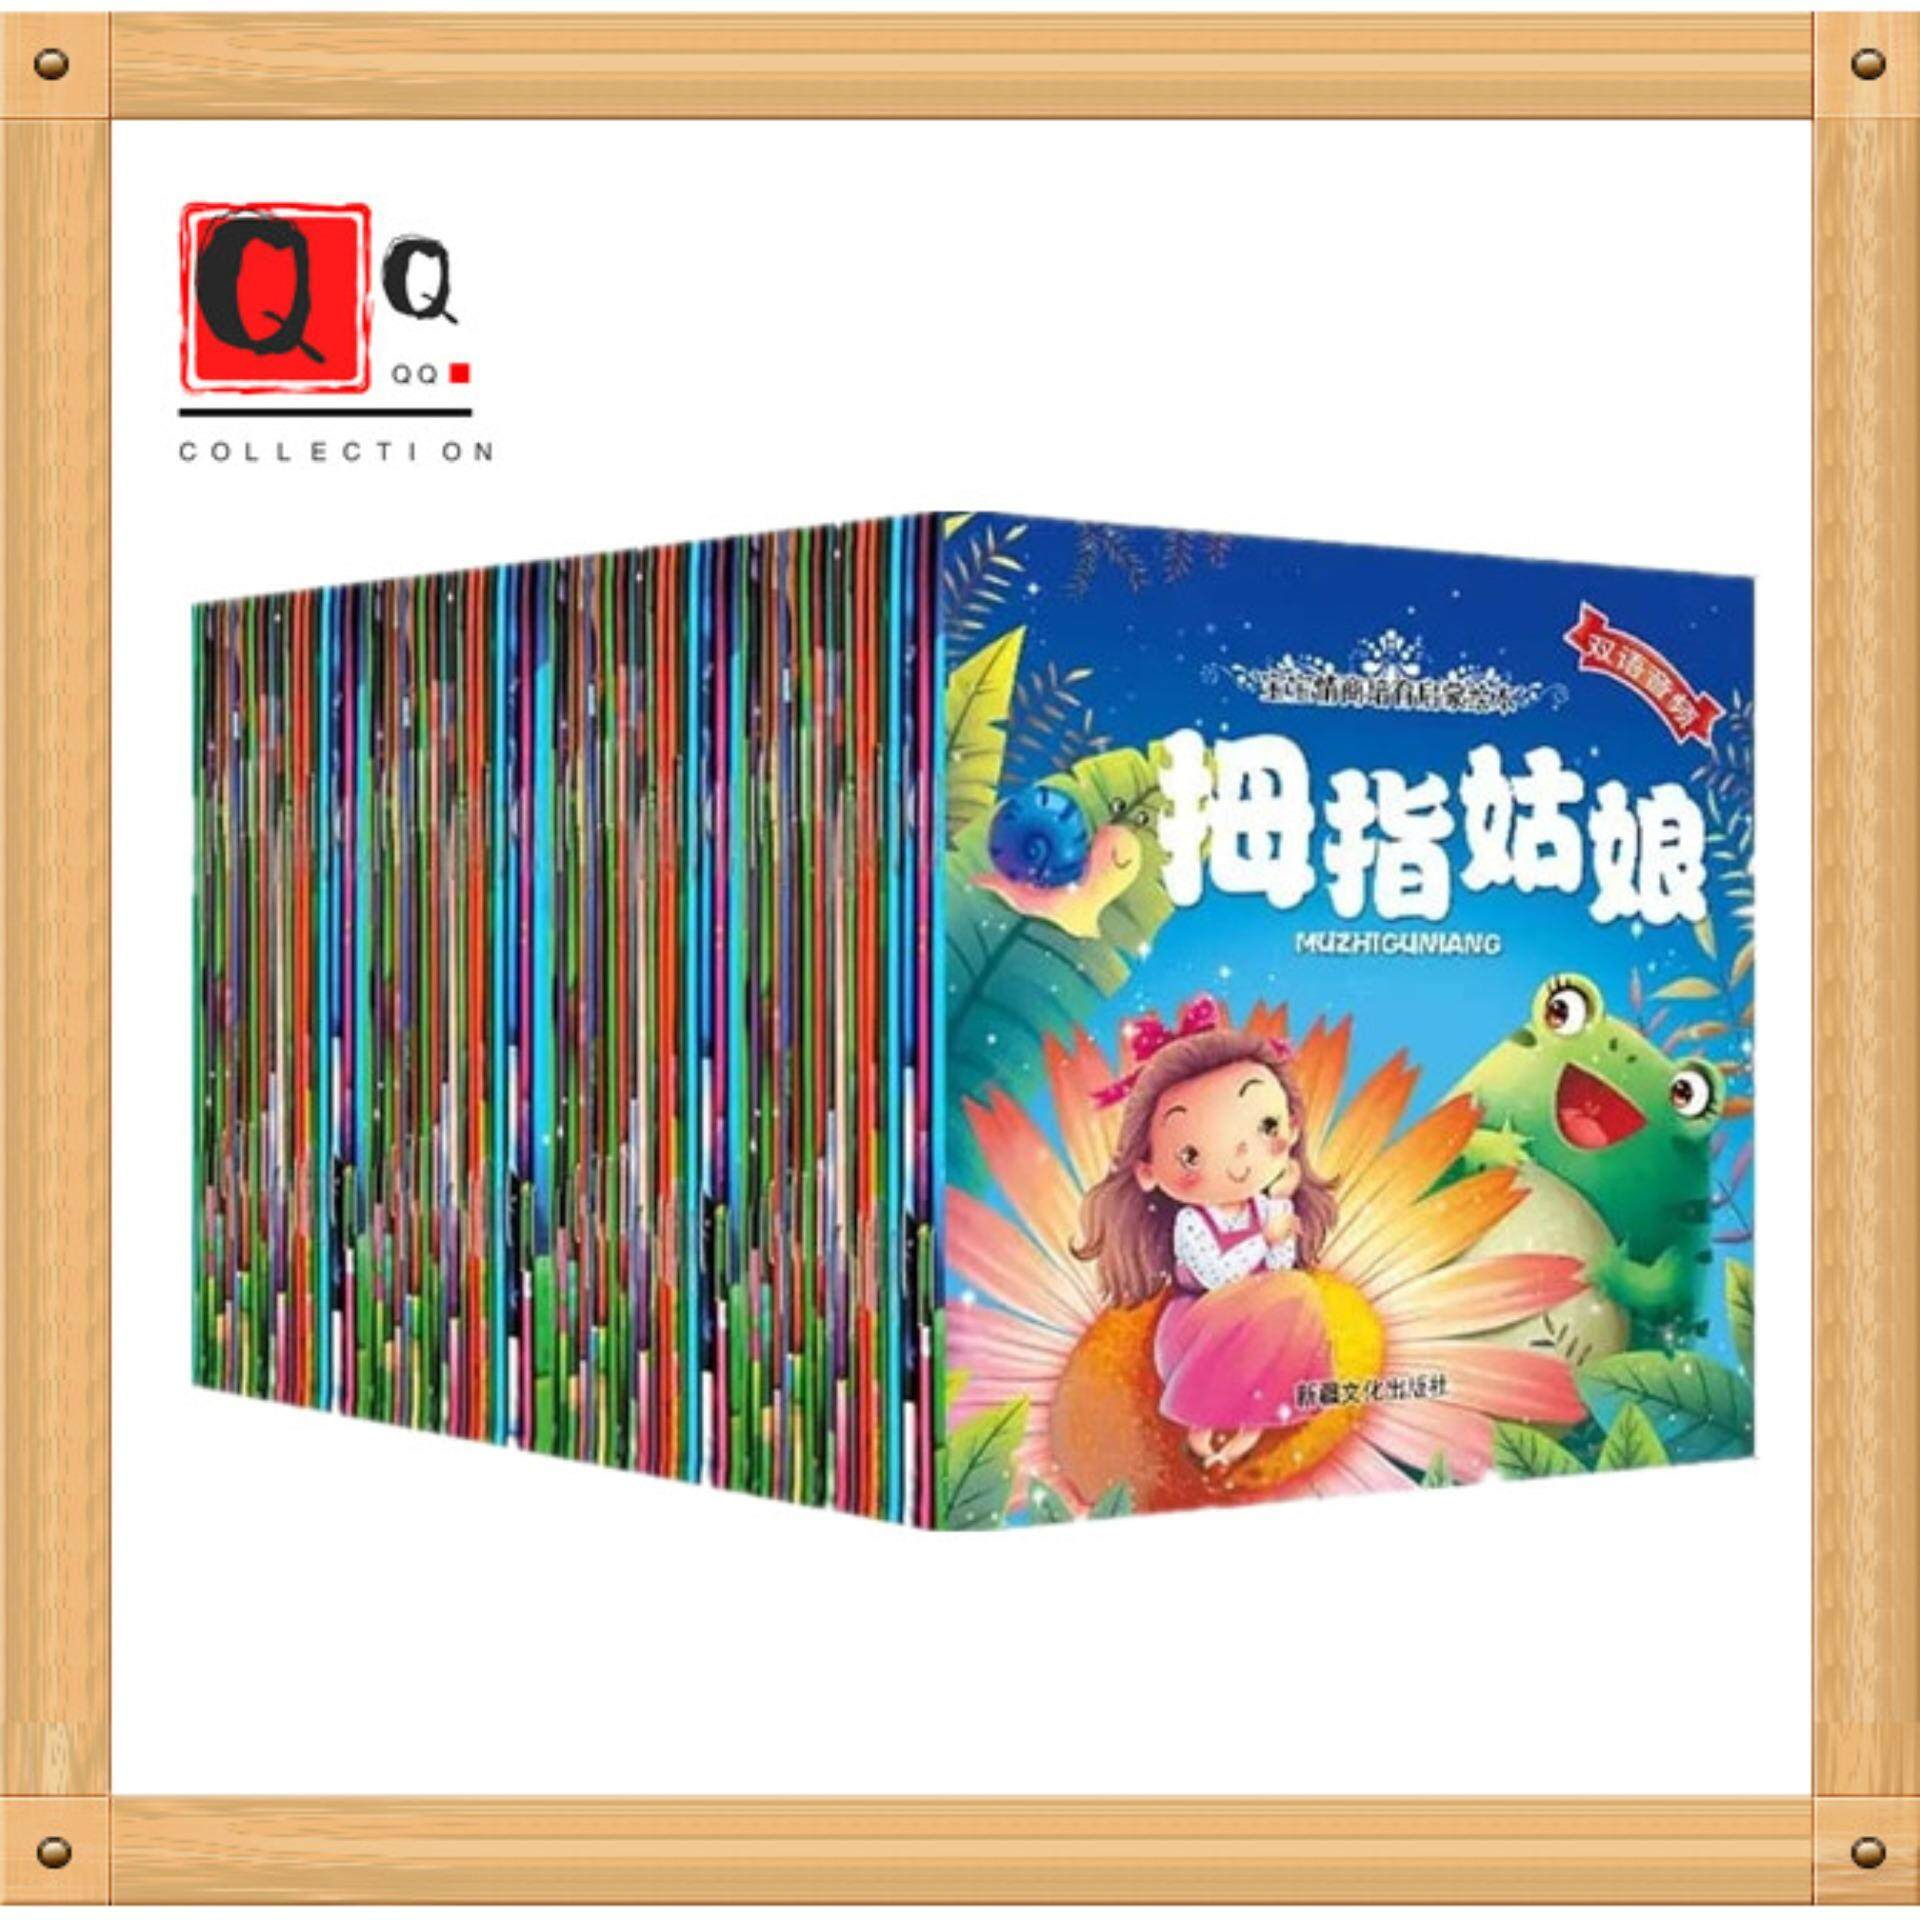 ✨NEW✨Childrens Educational Bedtime Bilingual story book with Pinyin 全套60册幼儿童睡前双语绘本故事书(附拼音)- A full set of 60 books